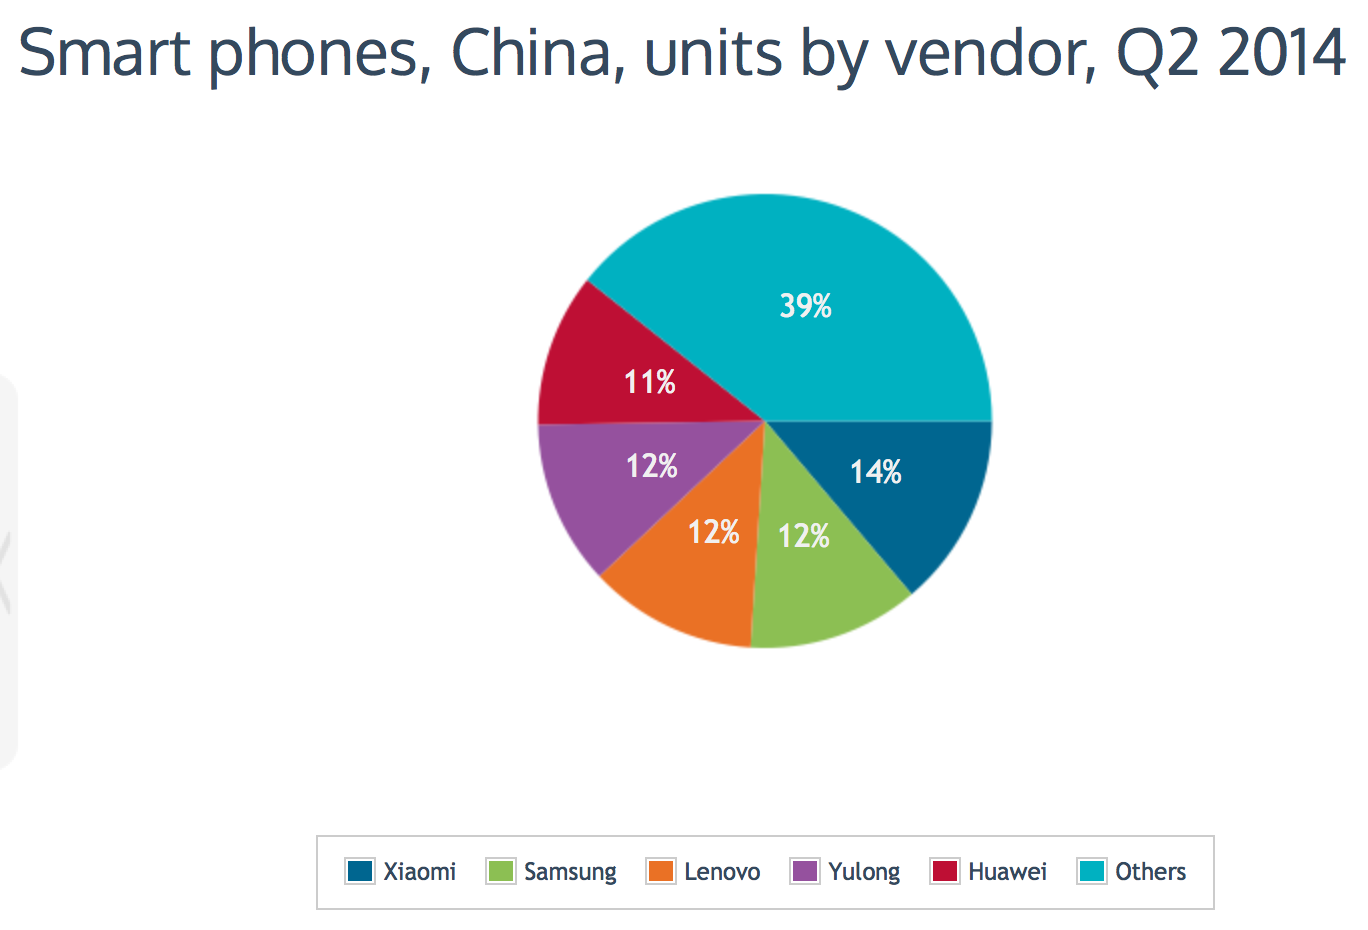 Xiaomi leaps over Samsung, is now China's biggest smartphone brand, Q2 2014